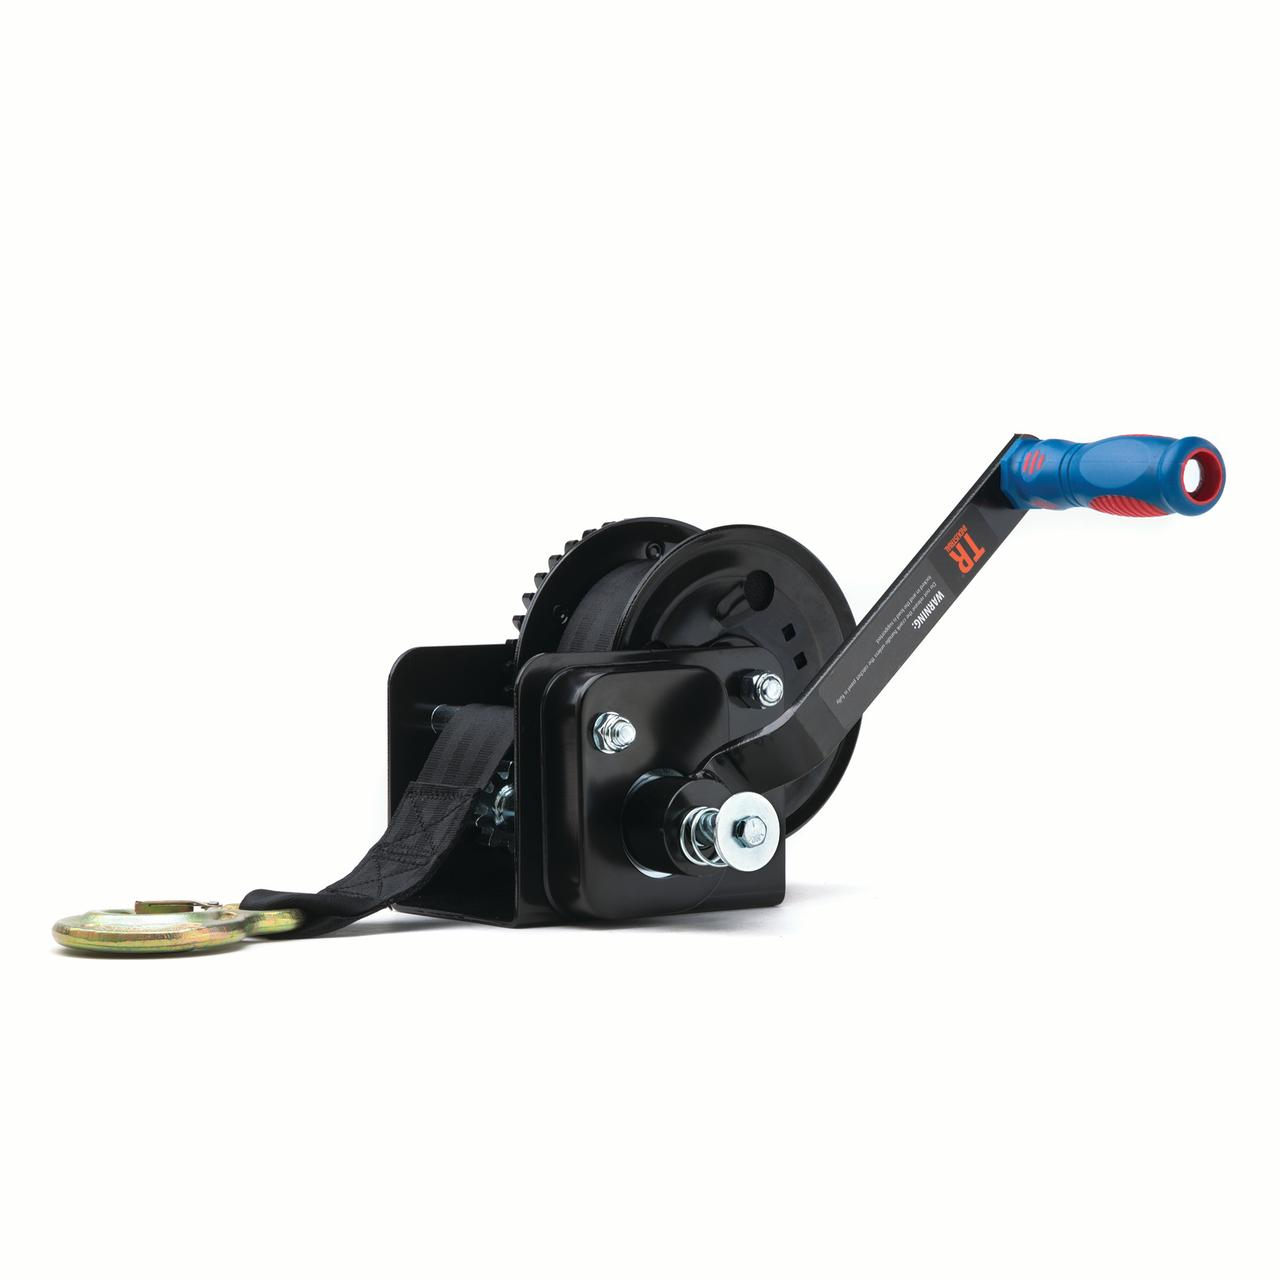 TR Industrial 1600 lb. Trailer Winch with Brake, Pre-Installed 20 ft Strap and Hook by TR Industrial